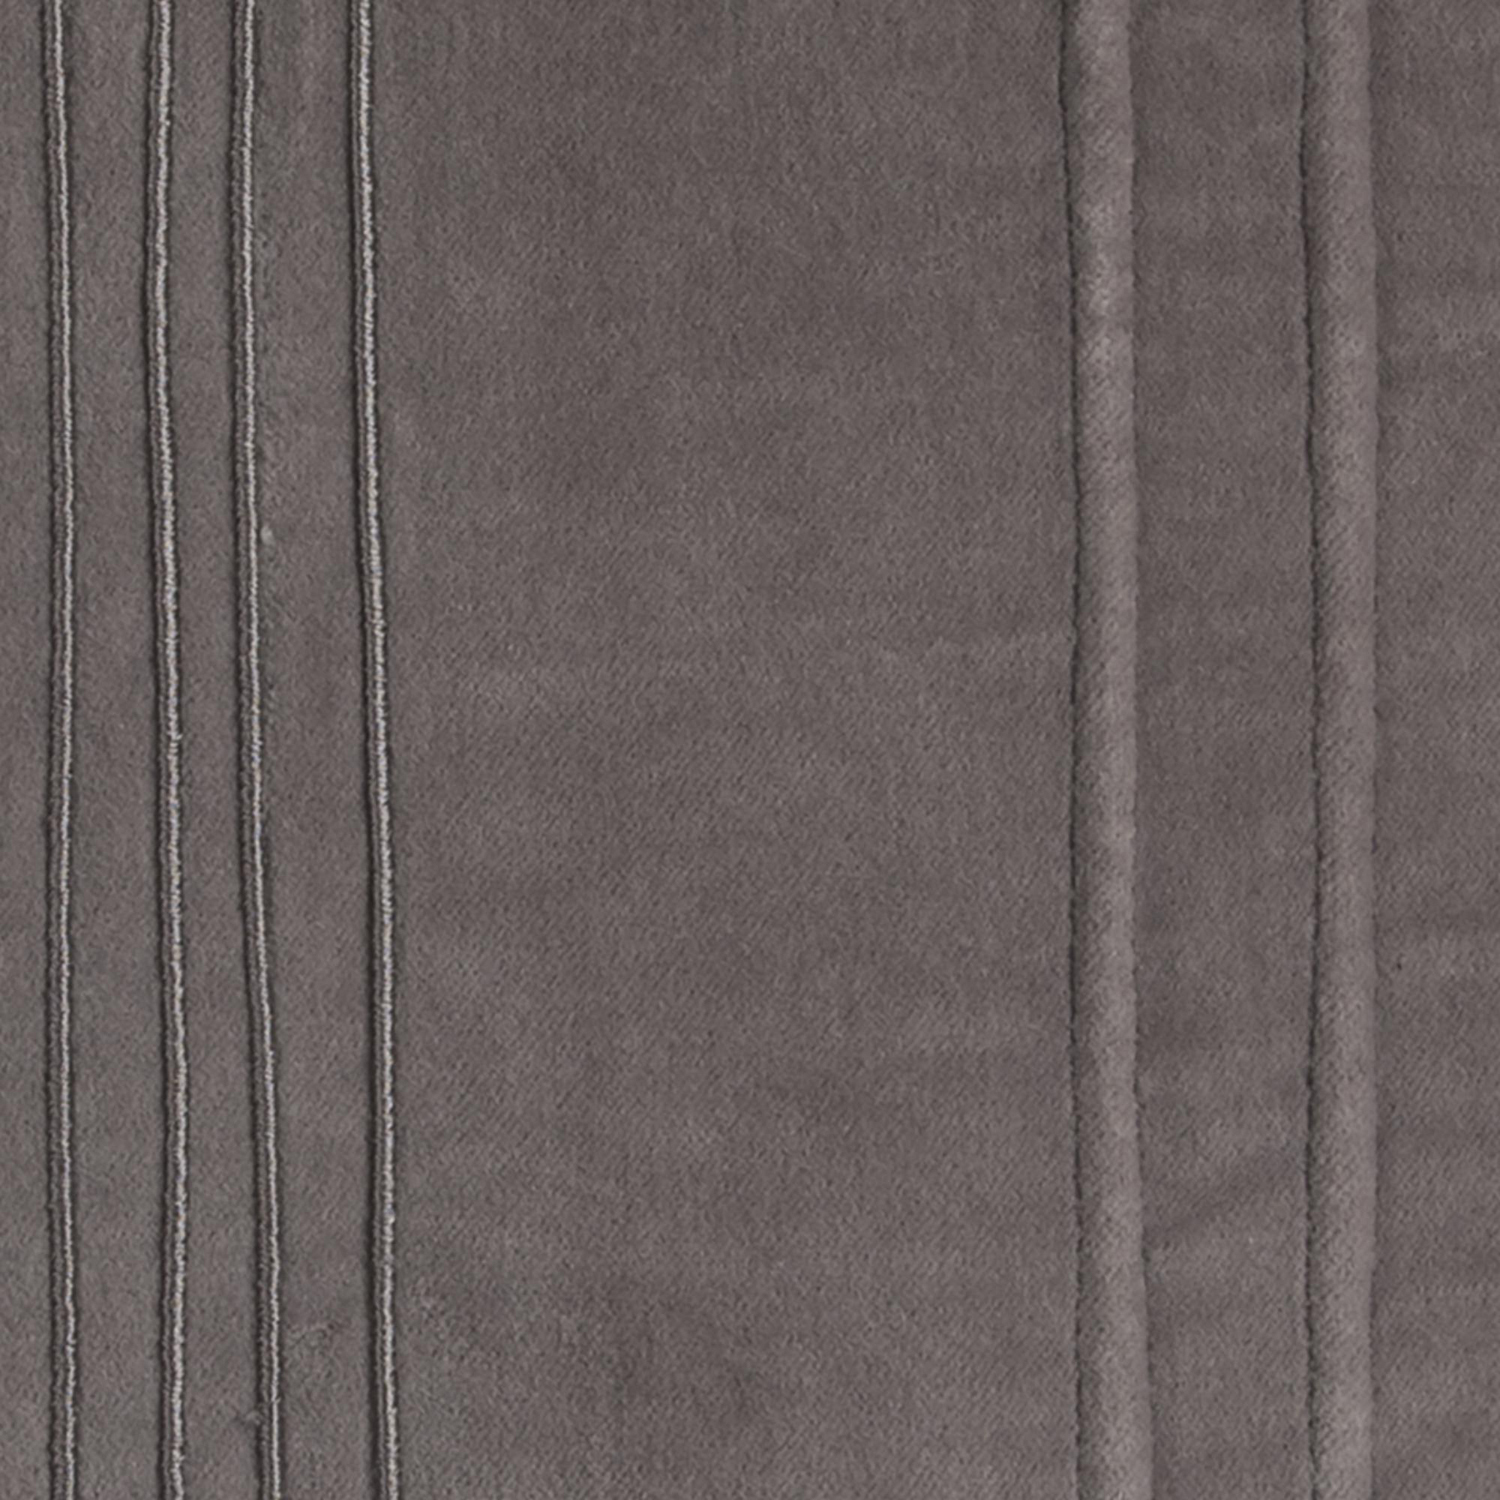 Solid Striped Dark Gray Pillow Cover